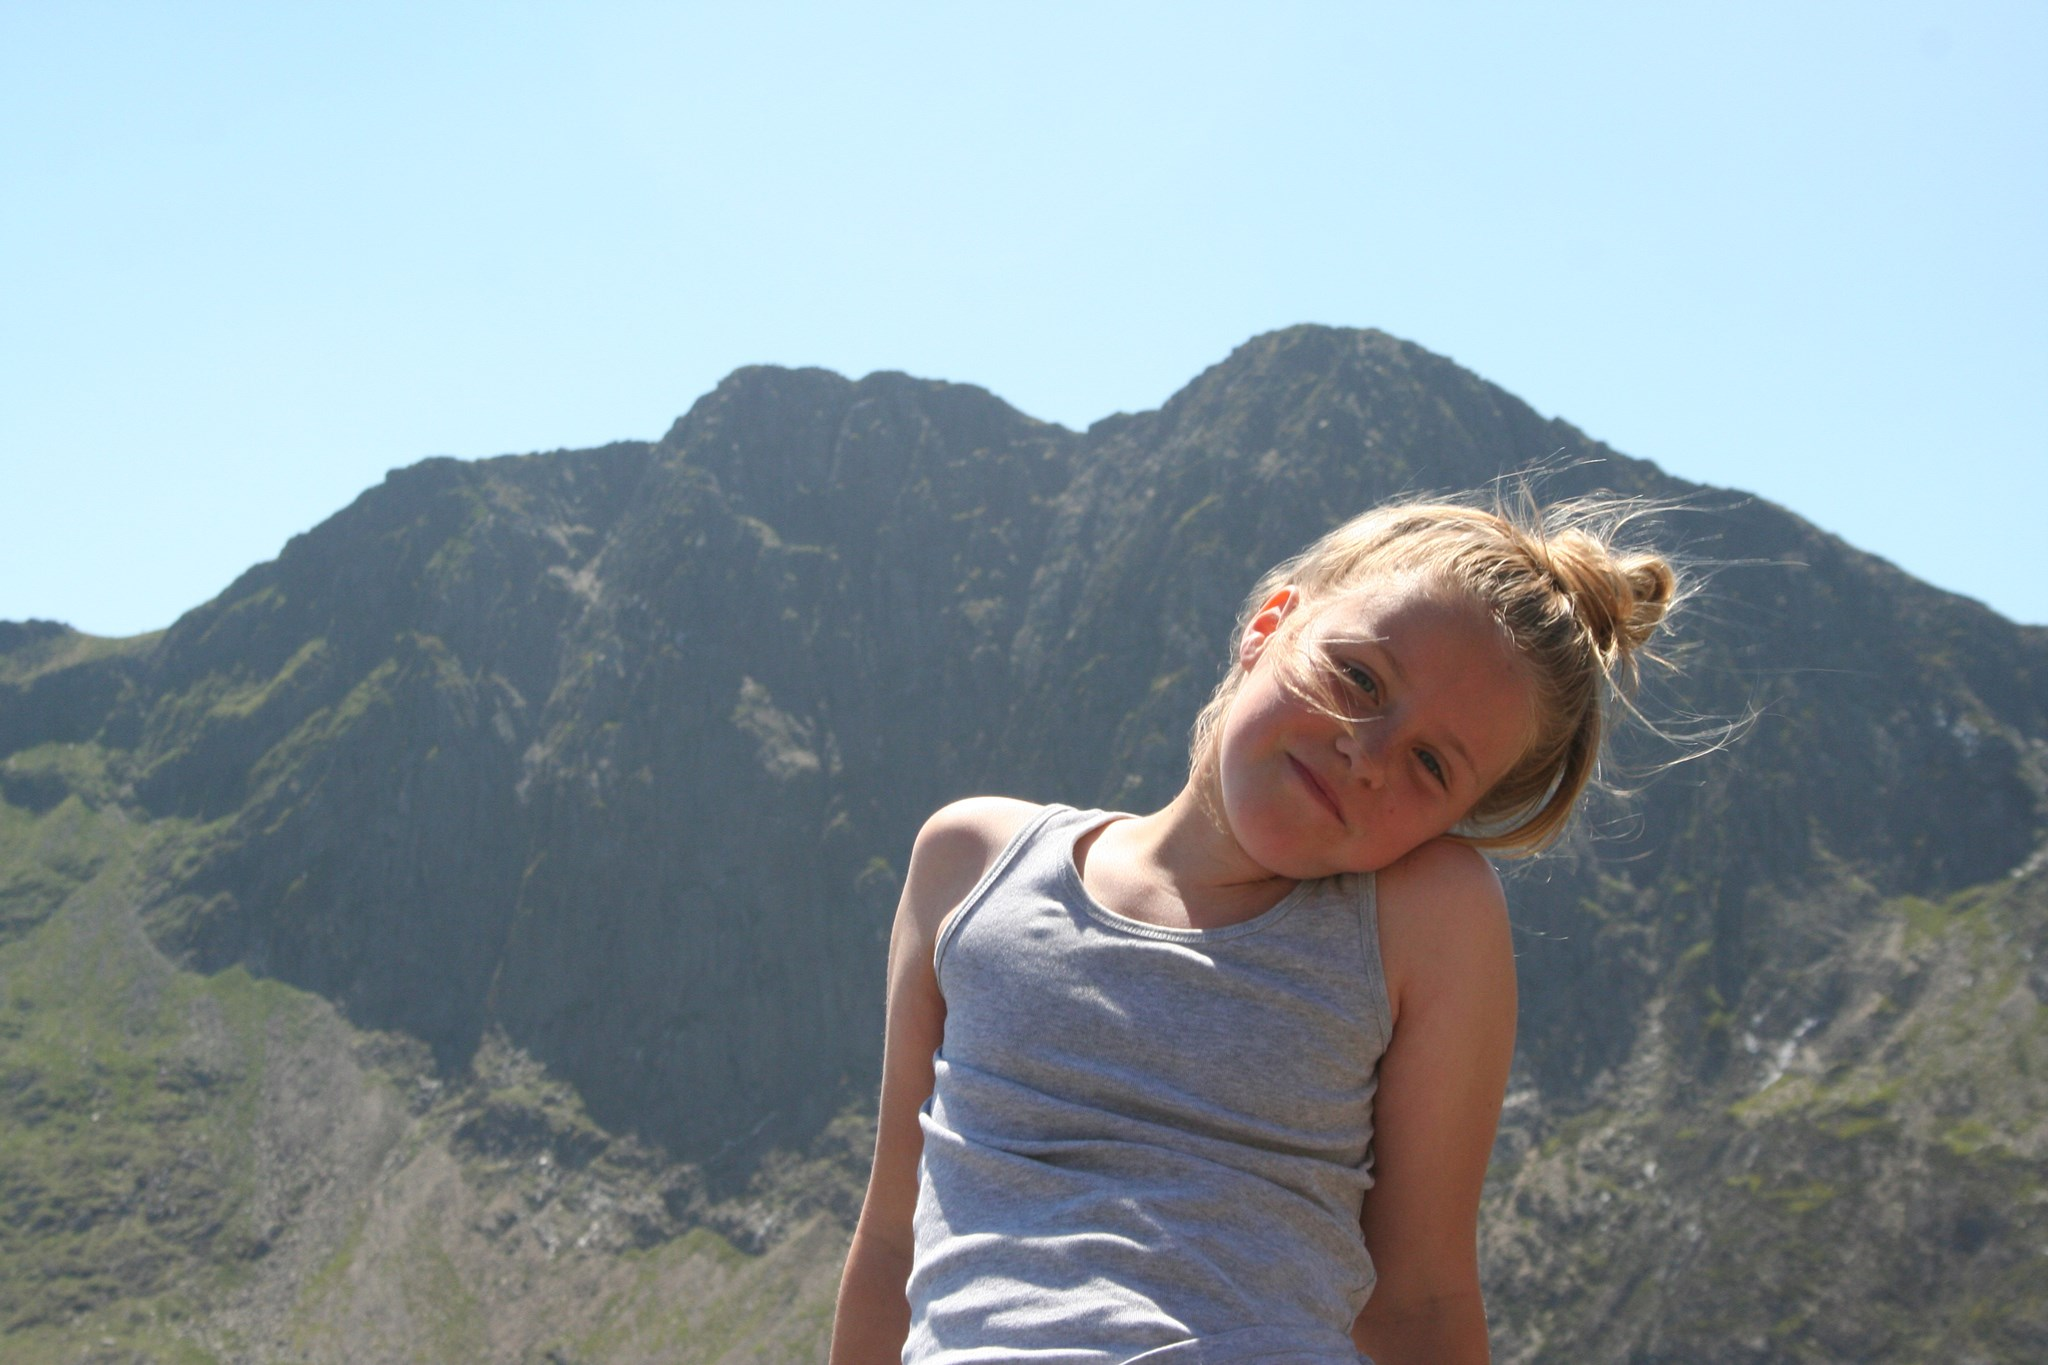 Our beautiful girl on holiday in Wales - May.